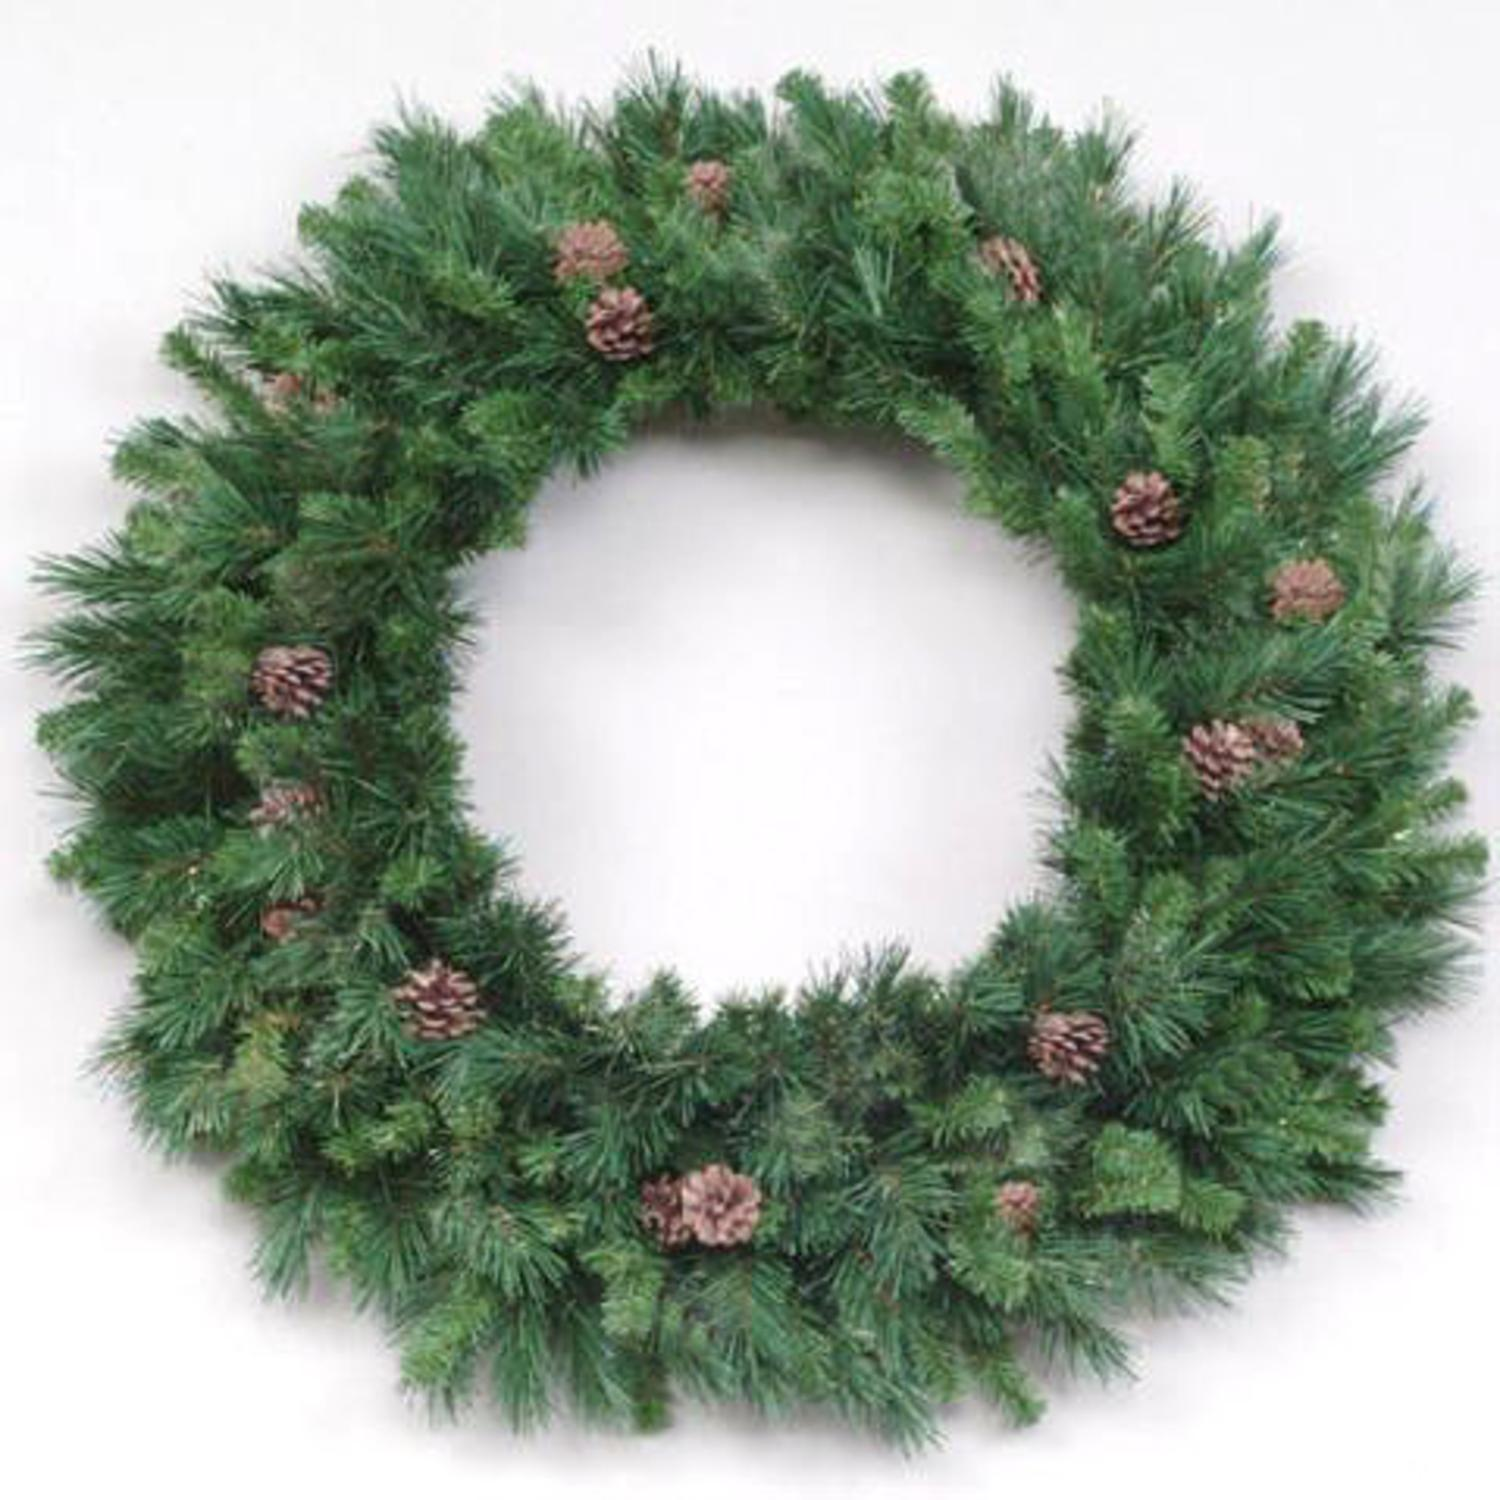 8' Cheyenne Pine with Cones Artificial Commercial Christmas Wreath - Unlit